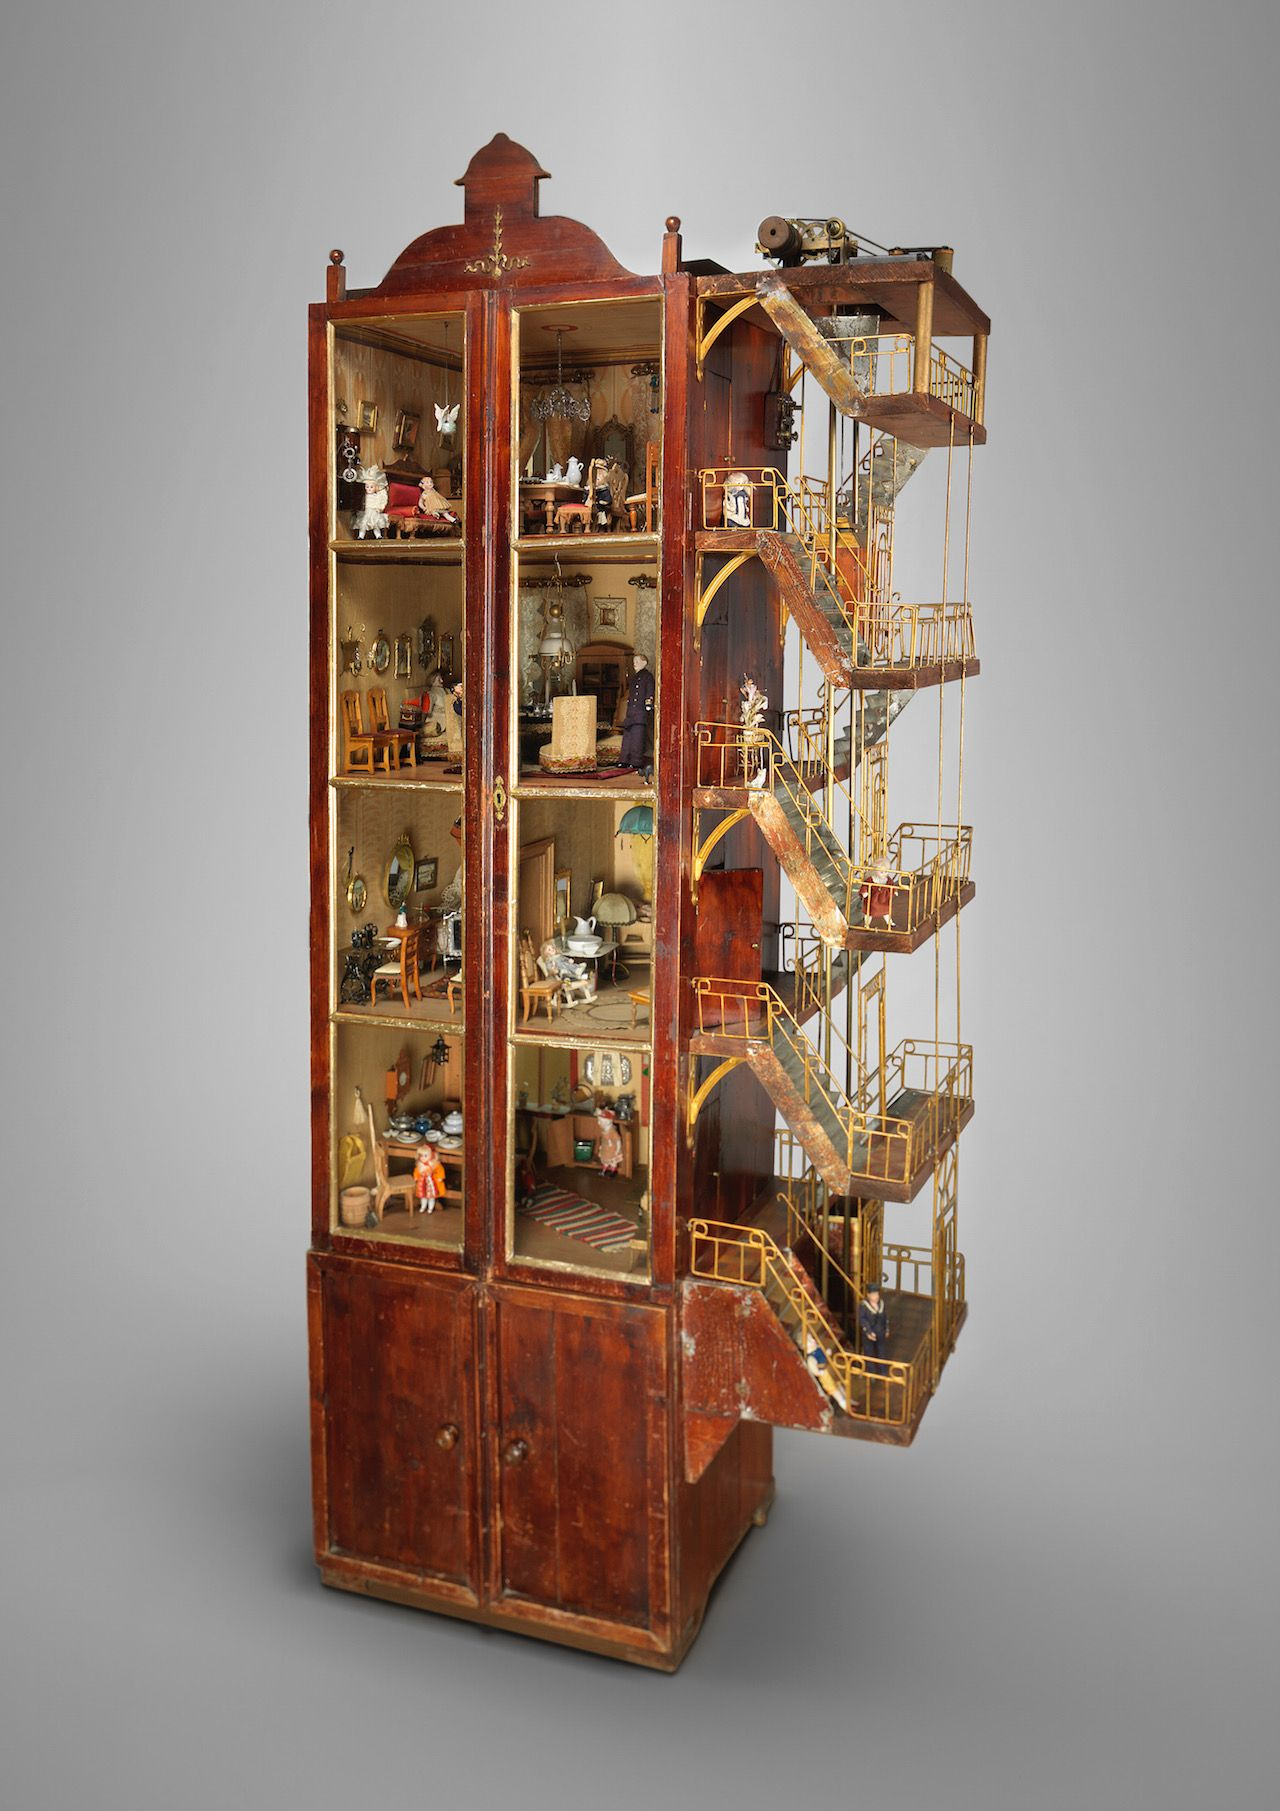 Möbel Carlsson John Carlsson Dollhouse And Furnishings 1912 Wardrobe